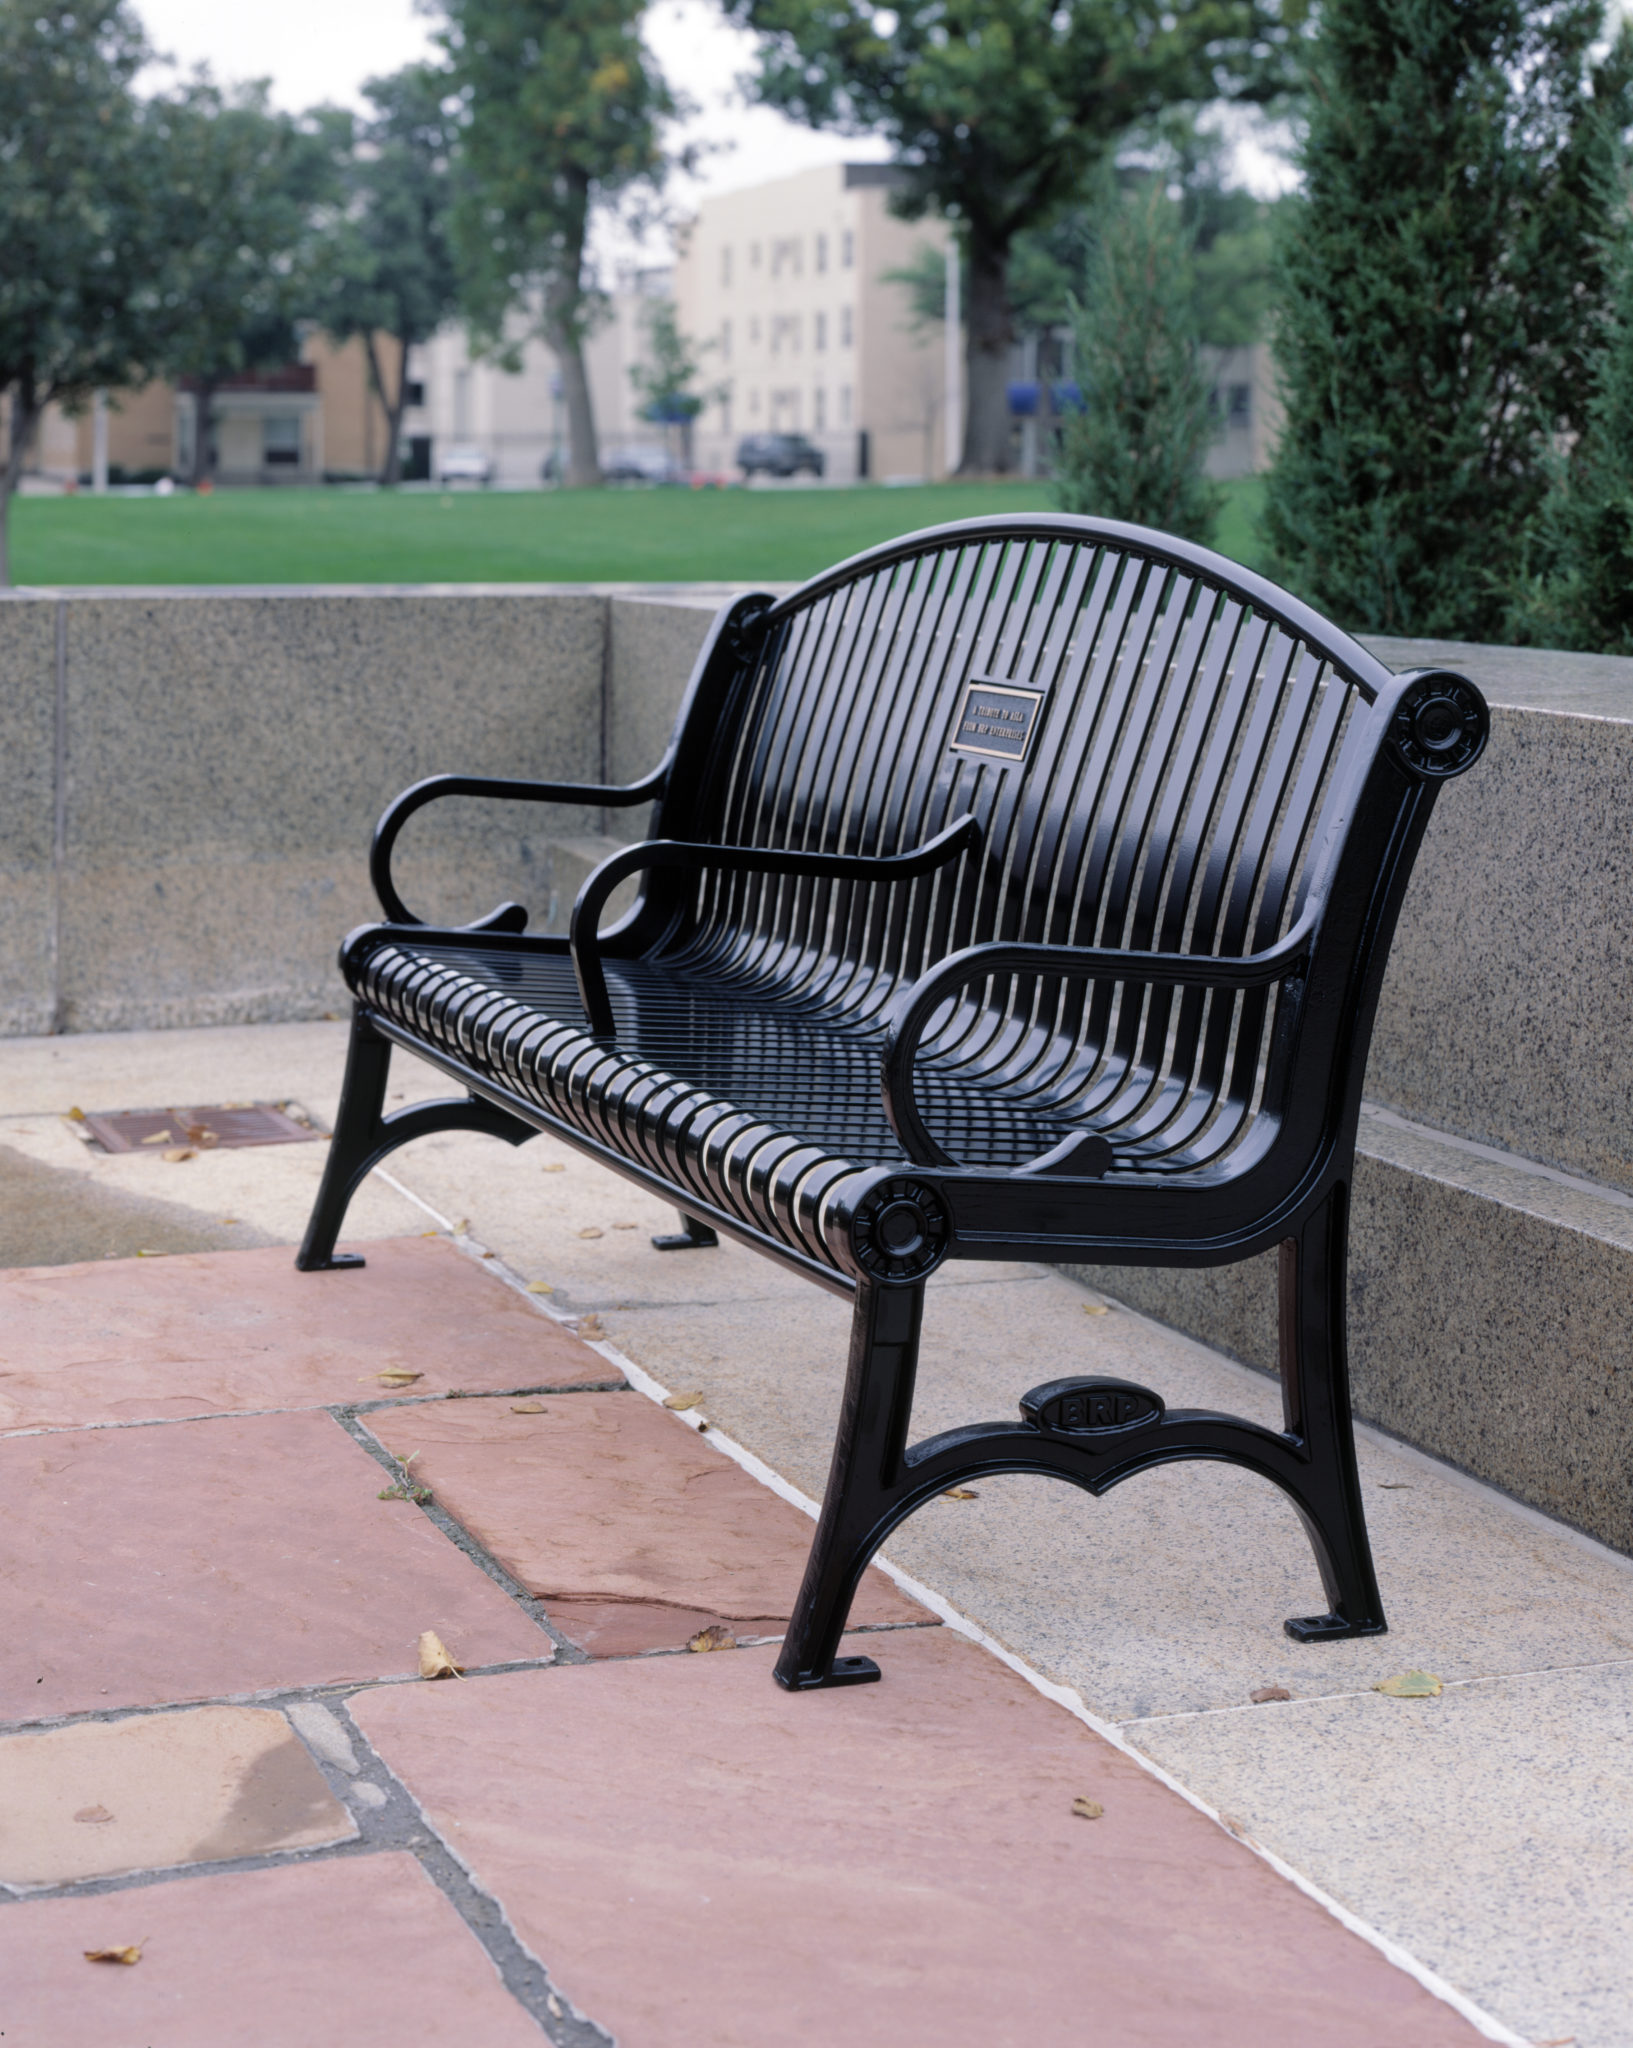 Peachy Manchester Vertical Slat Arched Back Memorial Bench With Cast Iron Ends Short Links Chair Design For Home Short Linksinfo